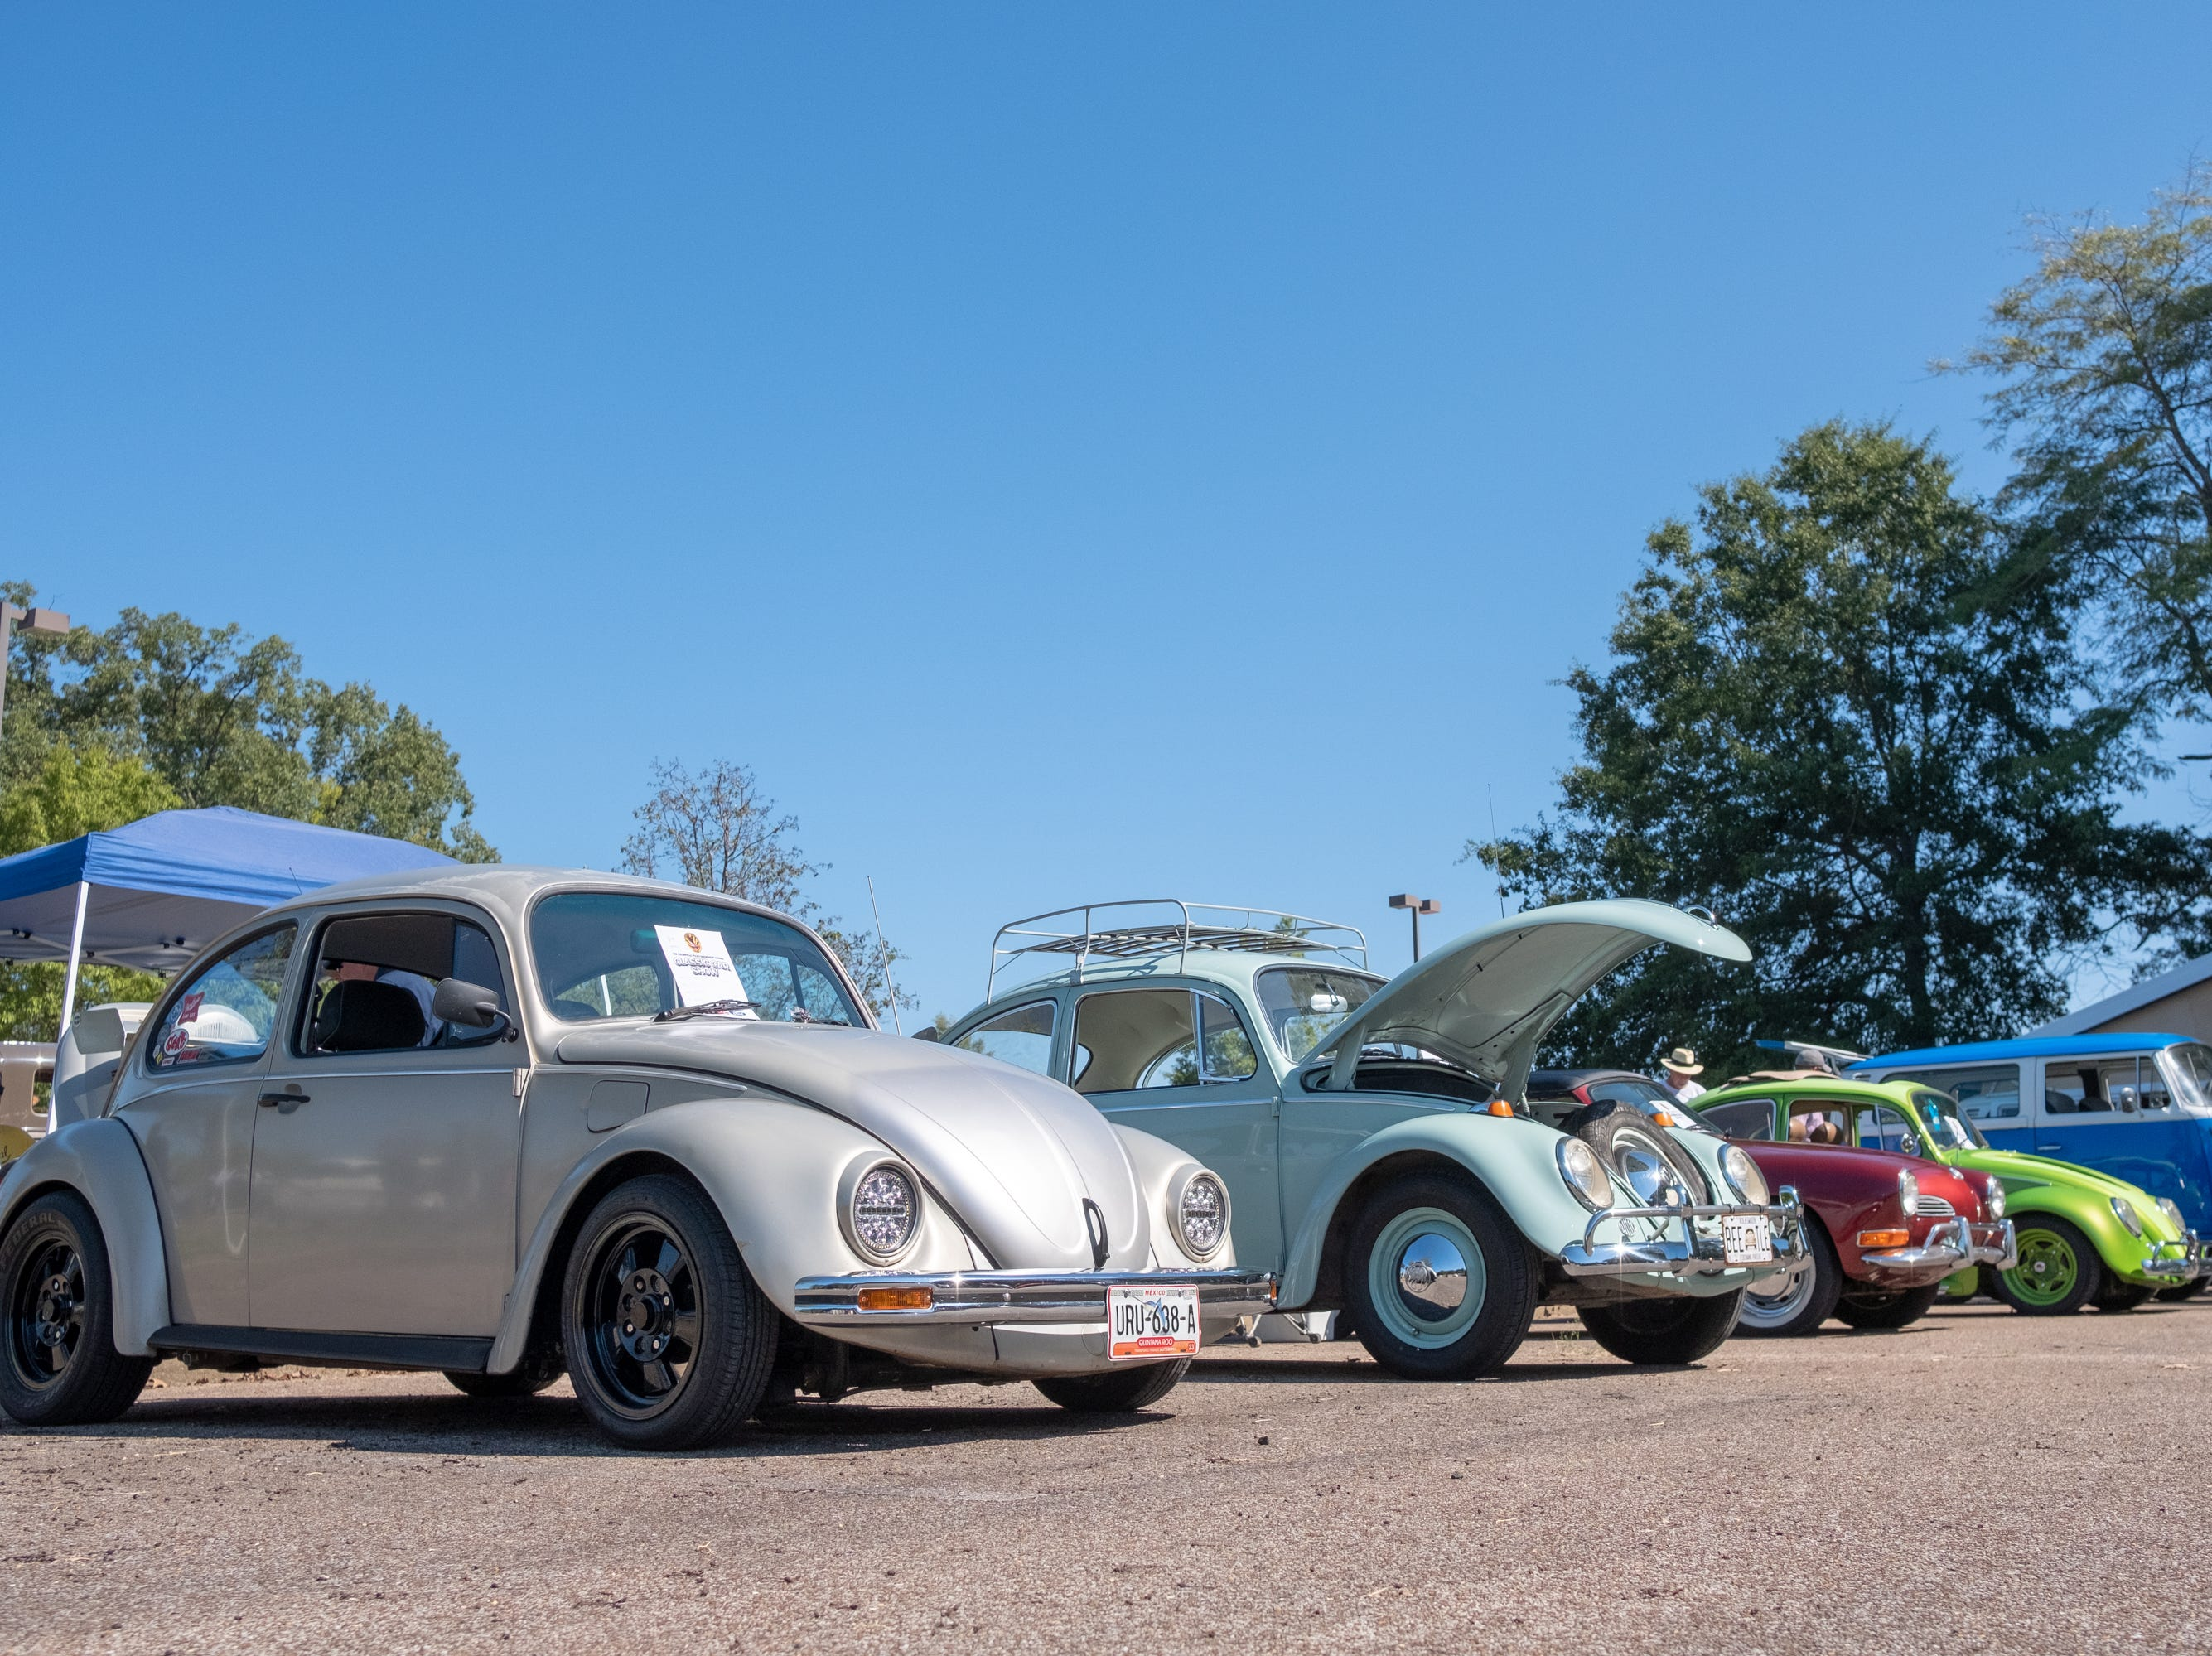 Antique VWs had their own row at the Collierville Classic Car Show on Sept. 15, 2018.